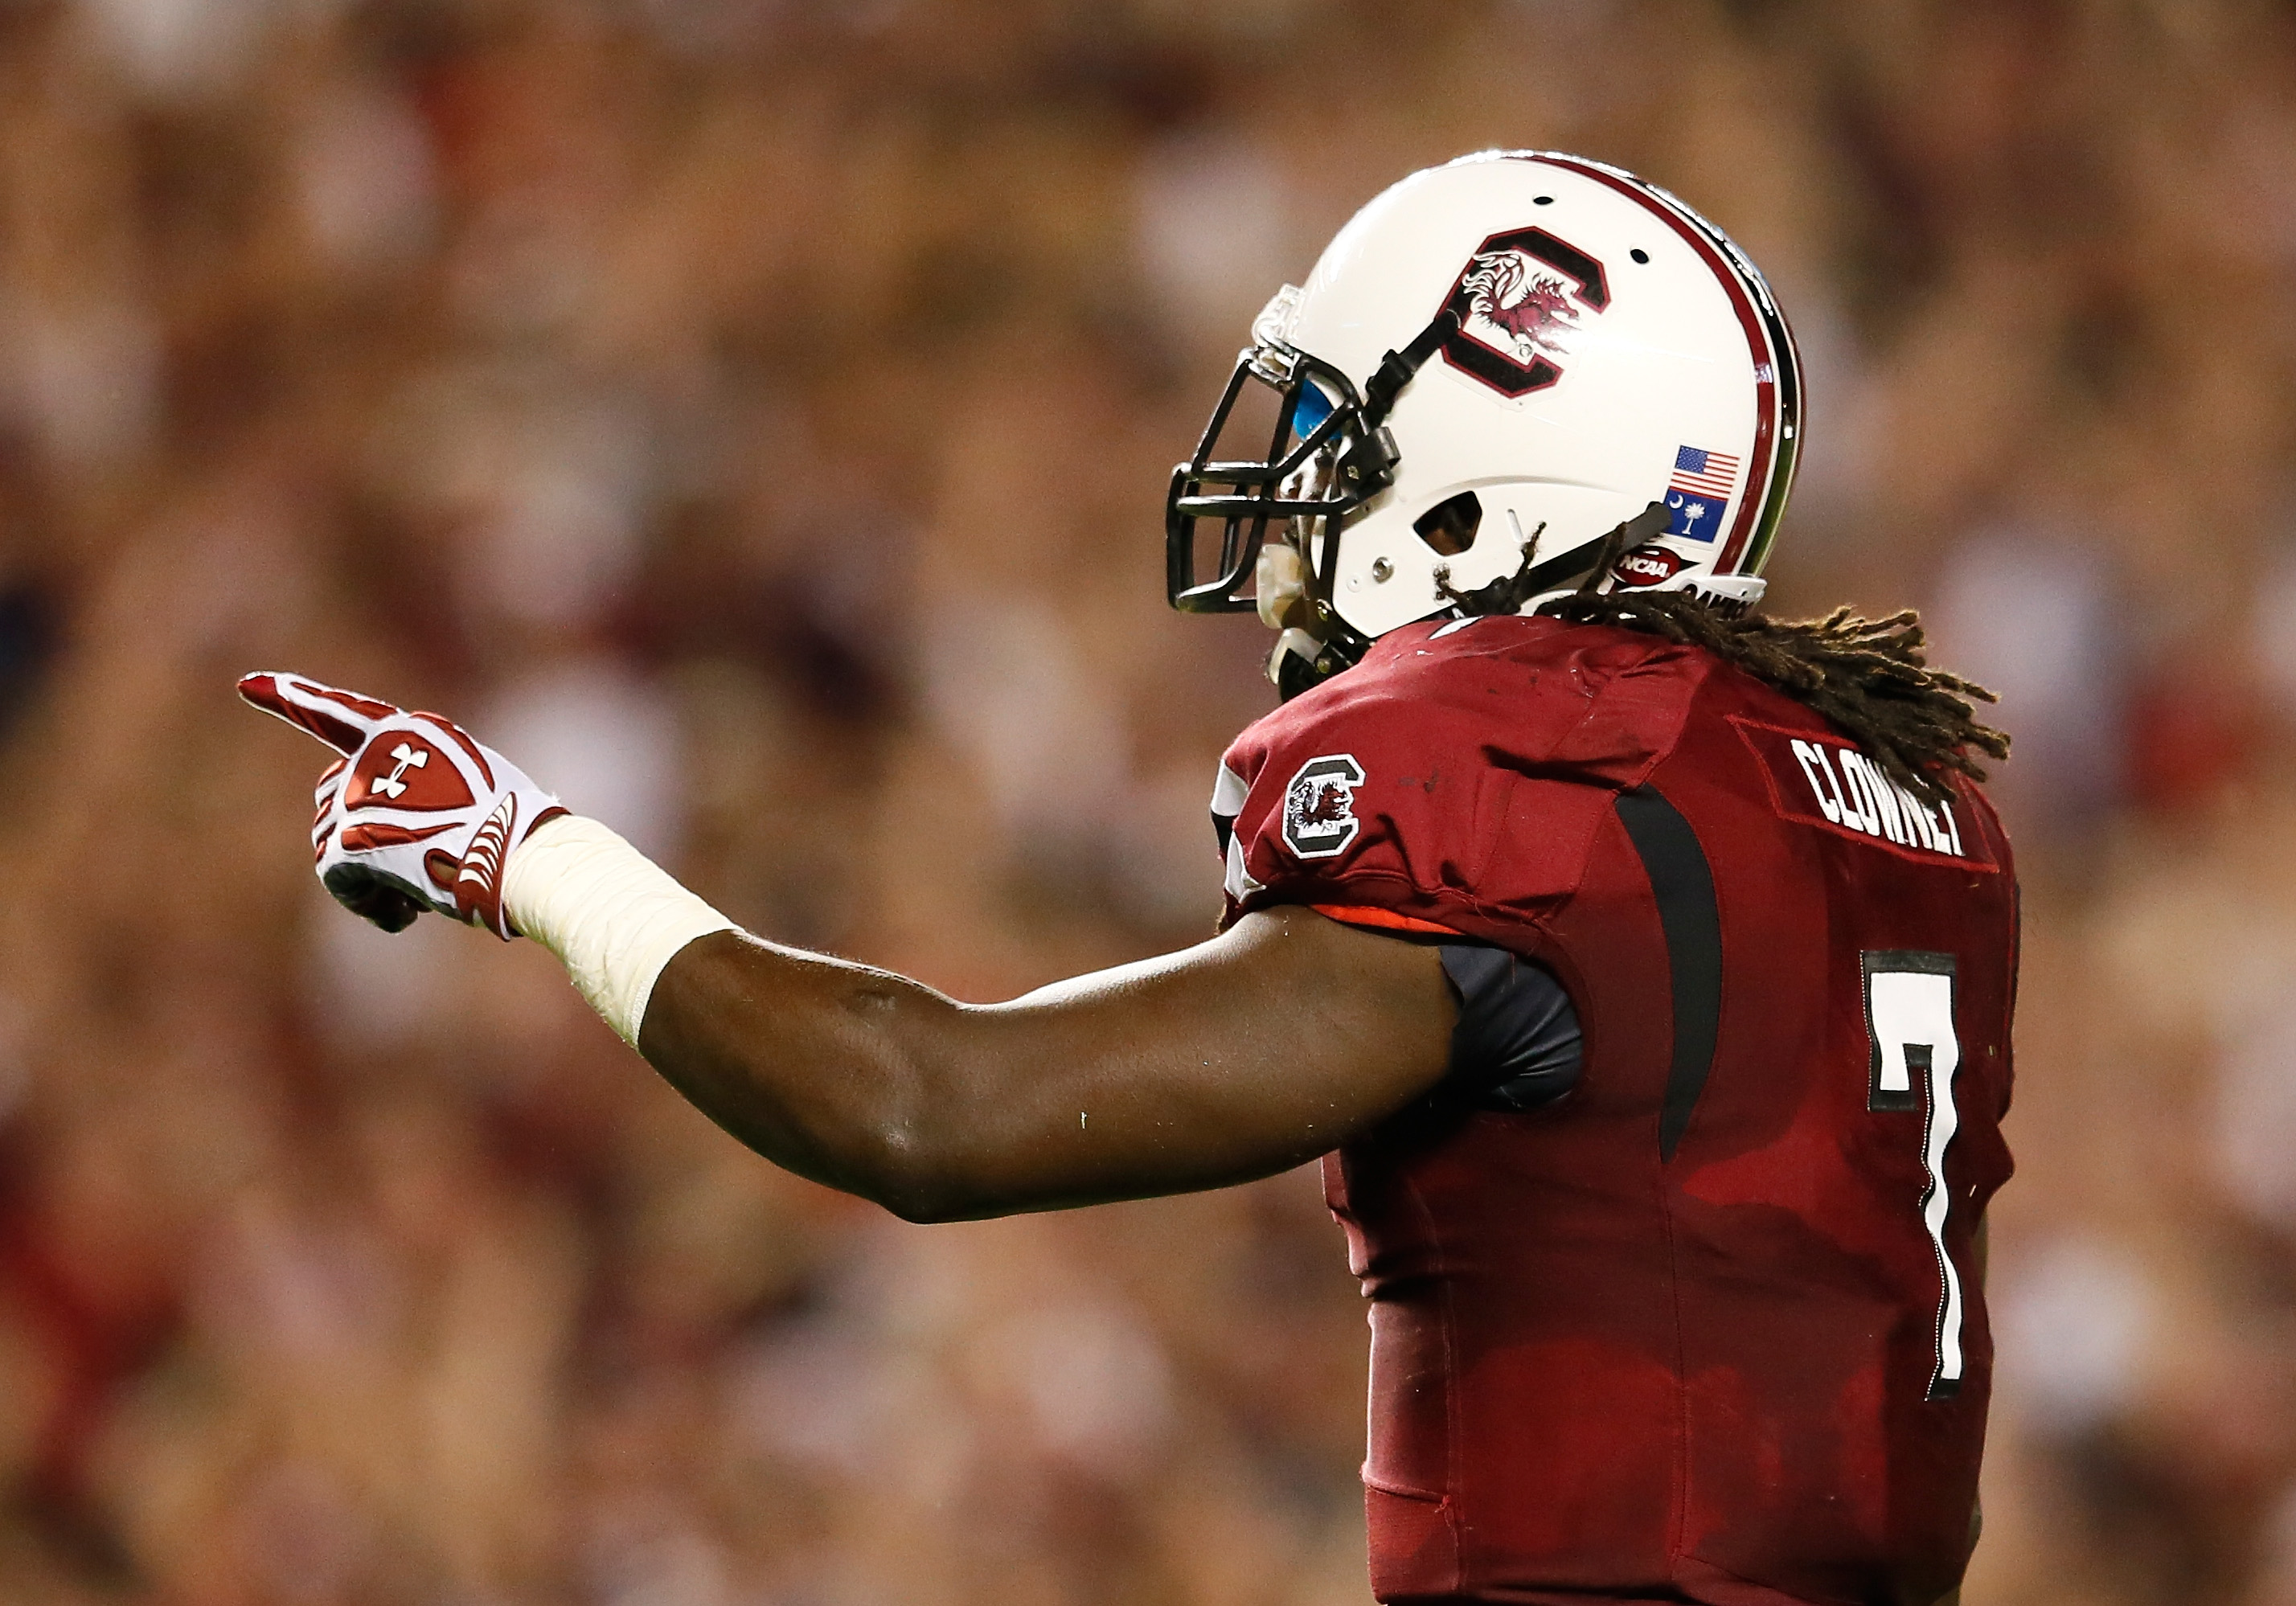 UGA had absolutely no chance to stop our man JD Clowney from wrecking havoc